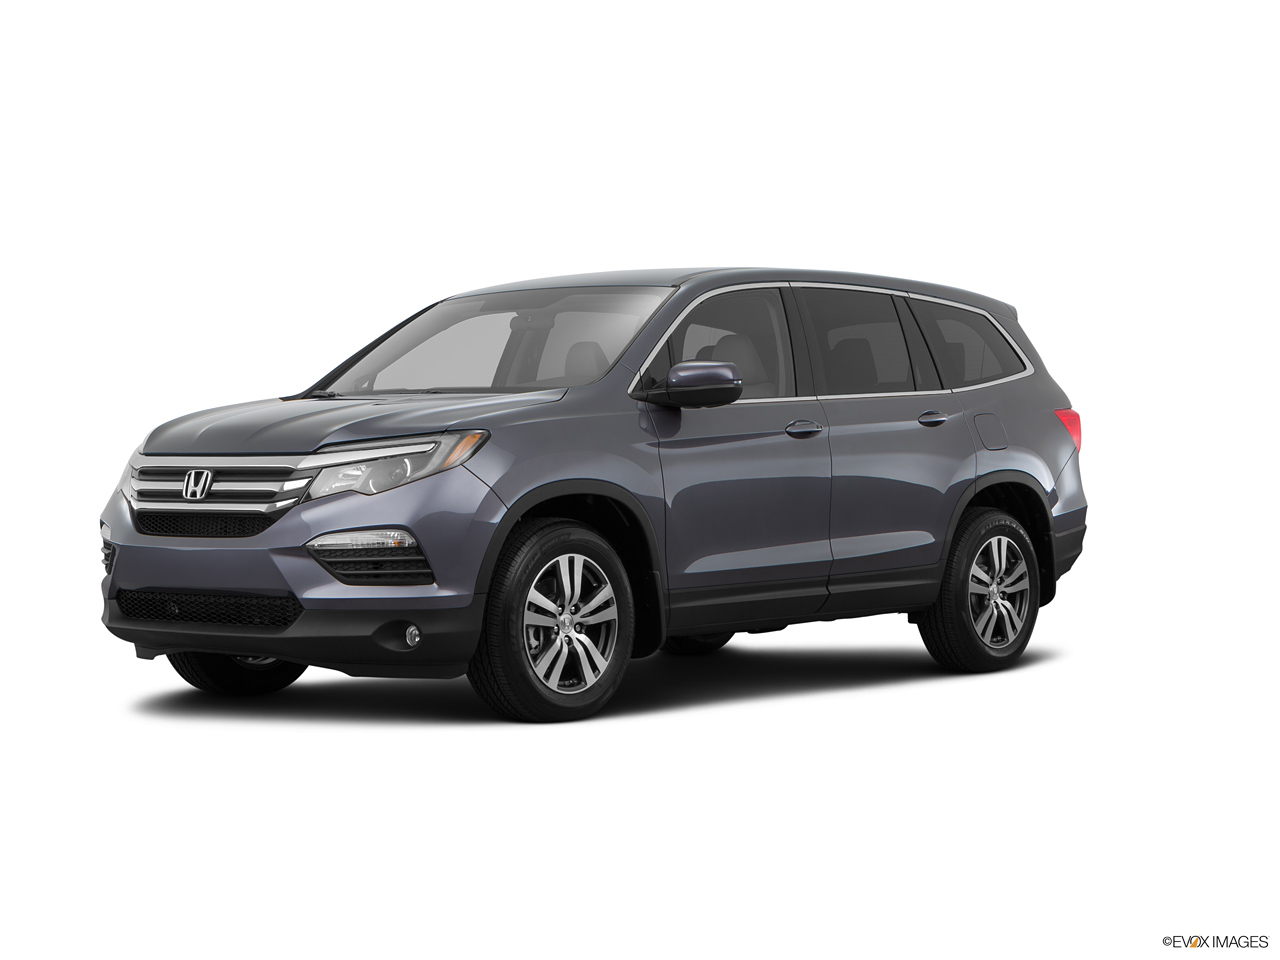 Car Pictures List for Honda Pilot 2016 3.5 Touring (UAE) | YallaMotor